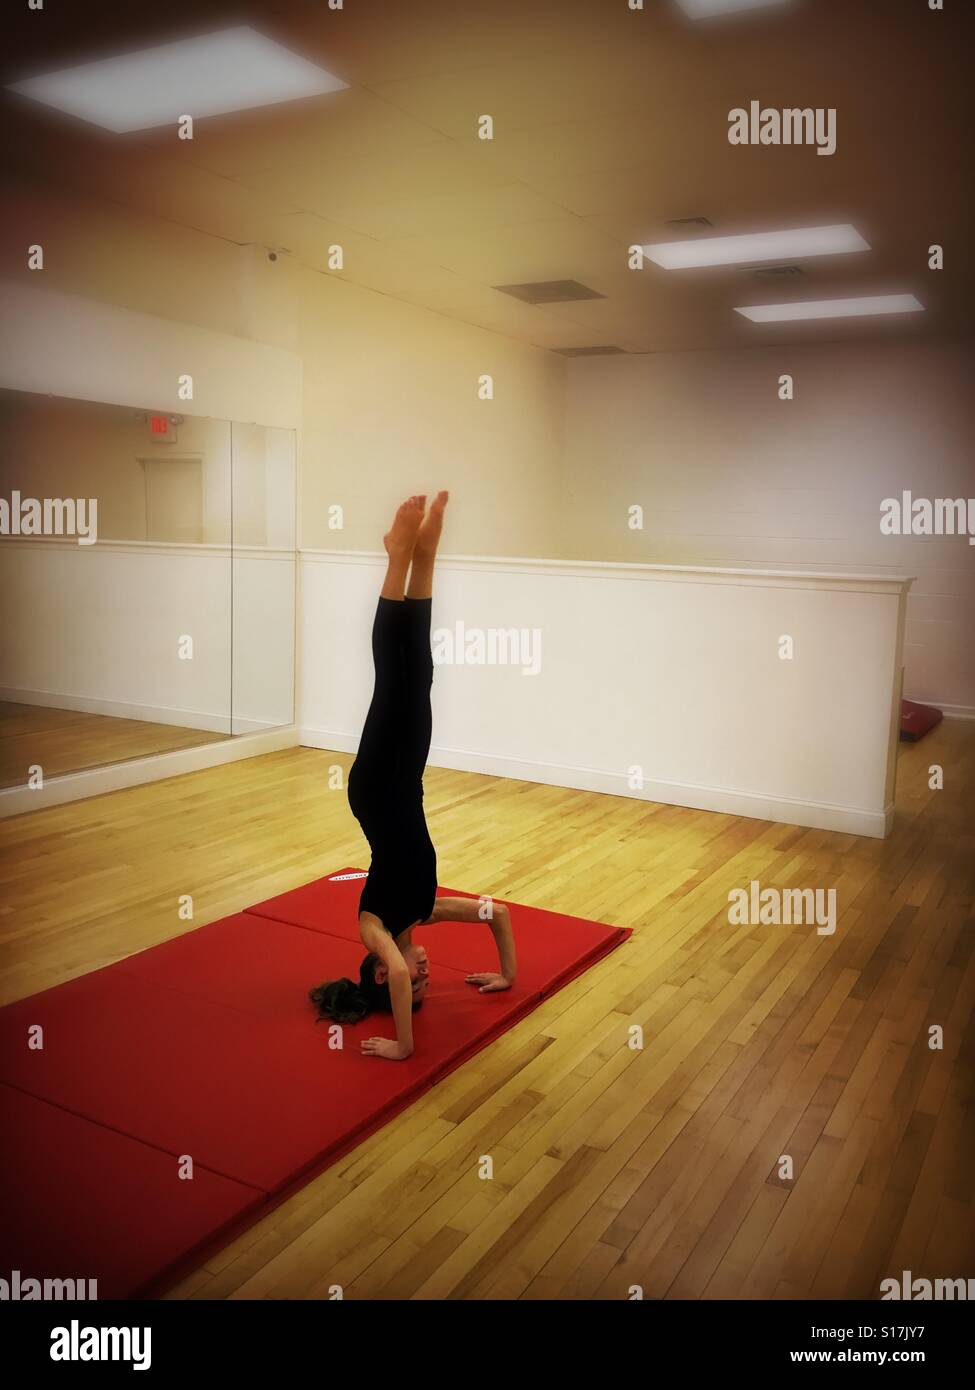 Girl doing headstand in acrobatics class - Stock Image